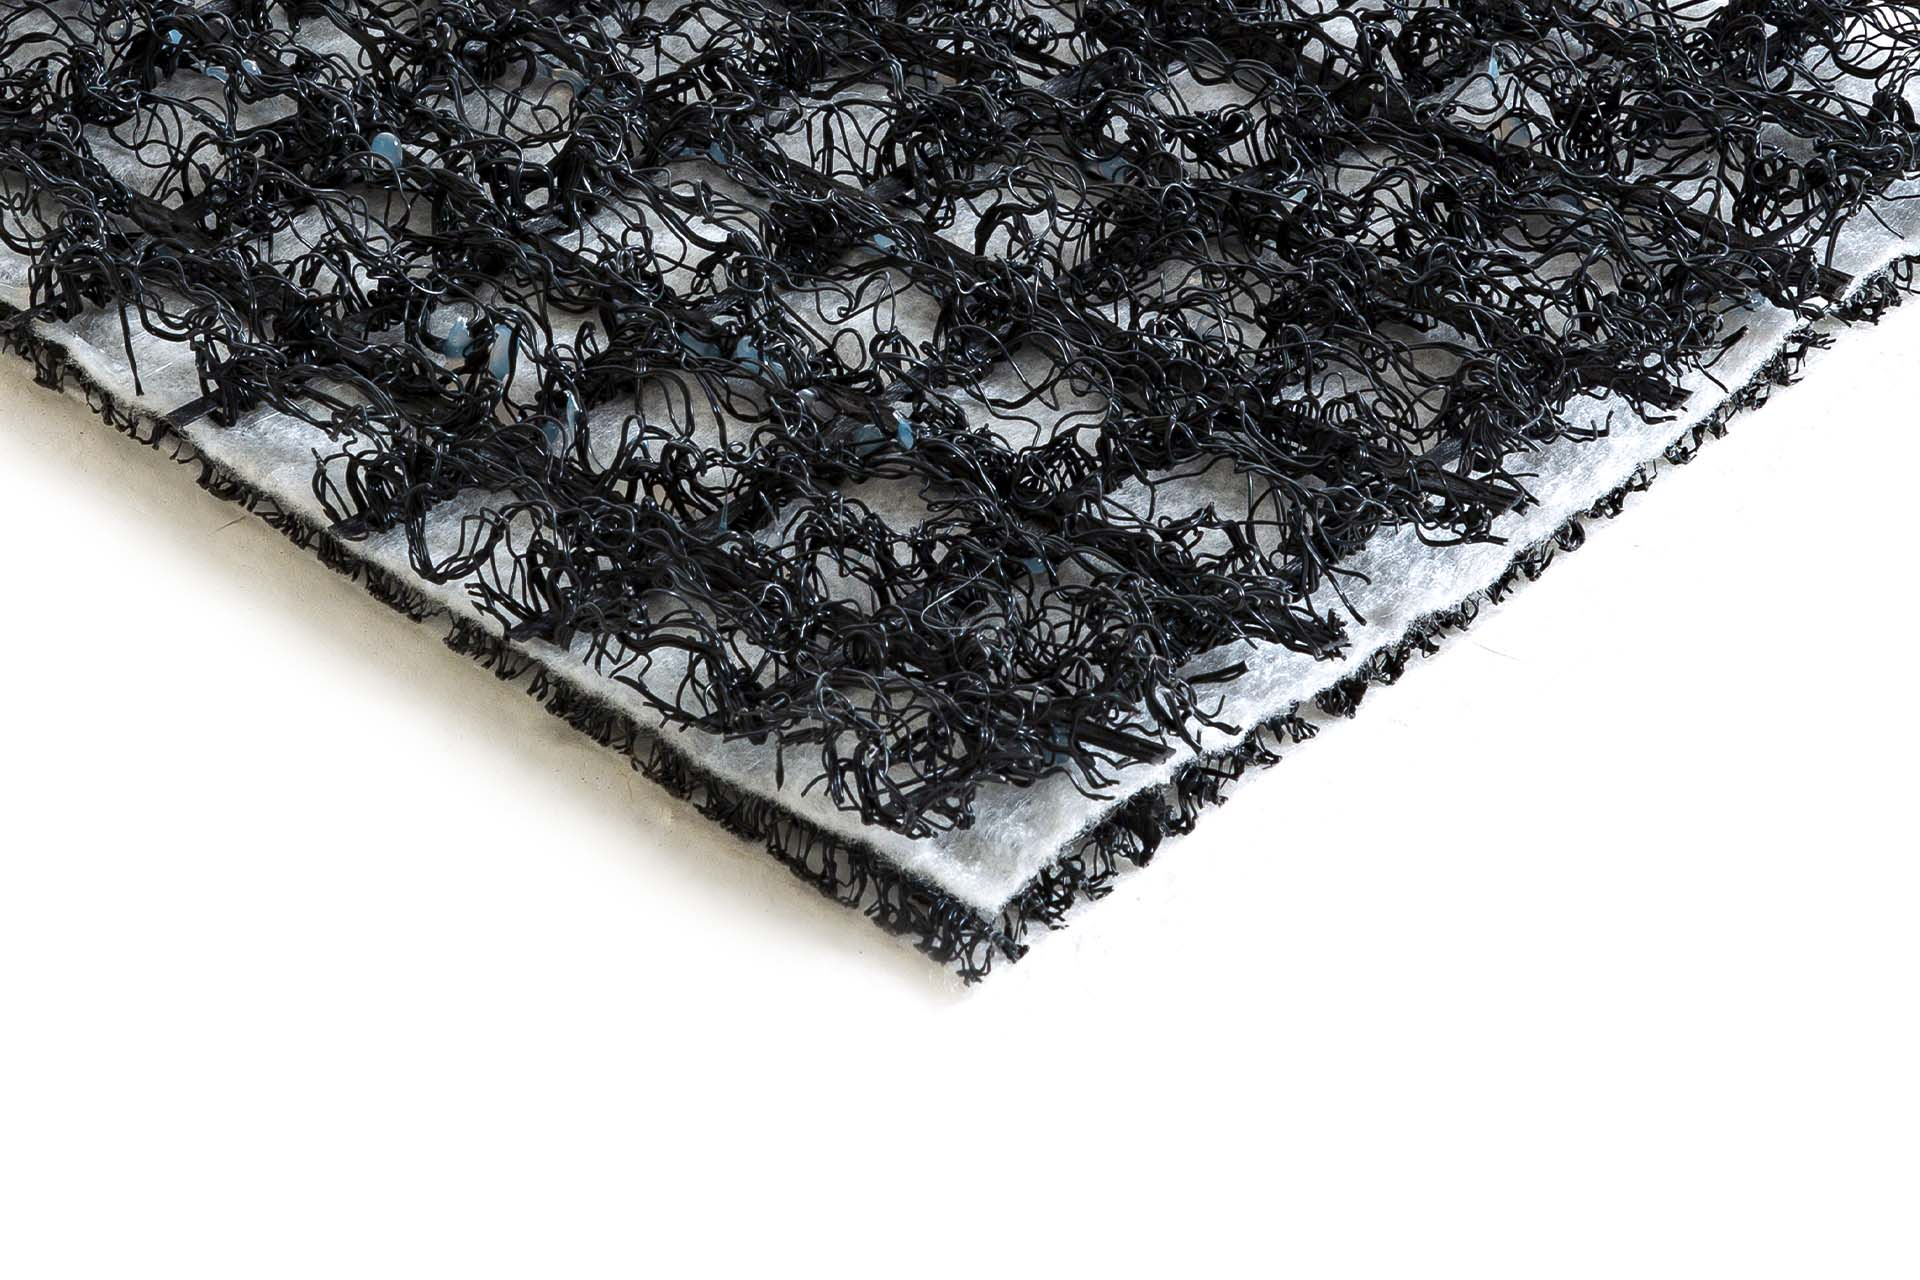 Synthetic monofilaments bonded to filtering geotextile and reinforced geomat